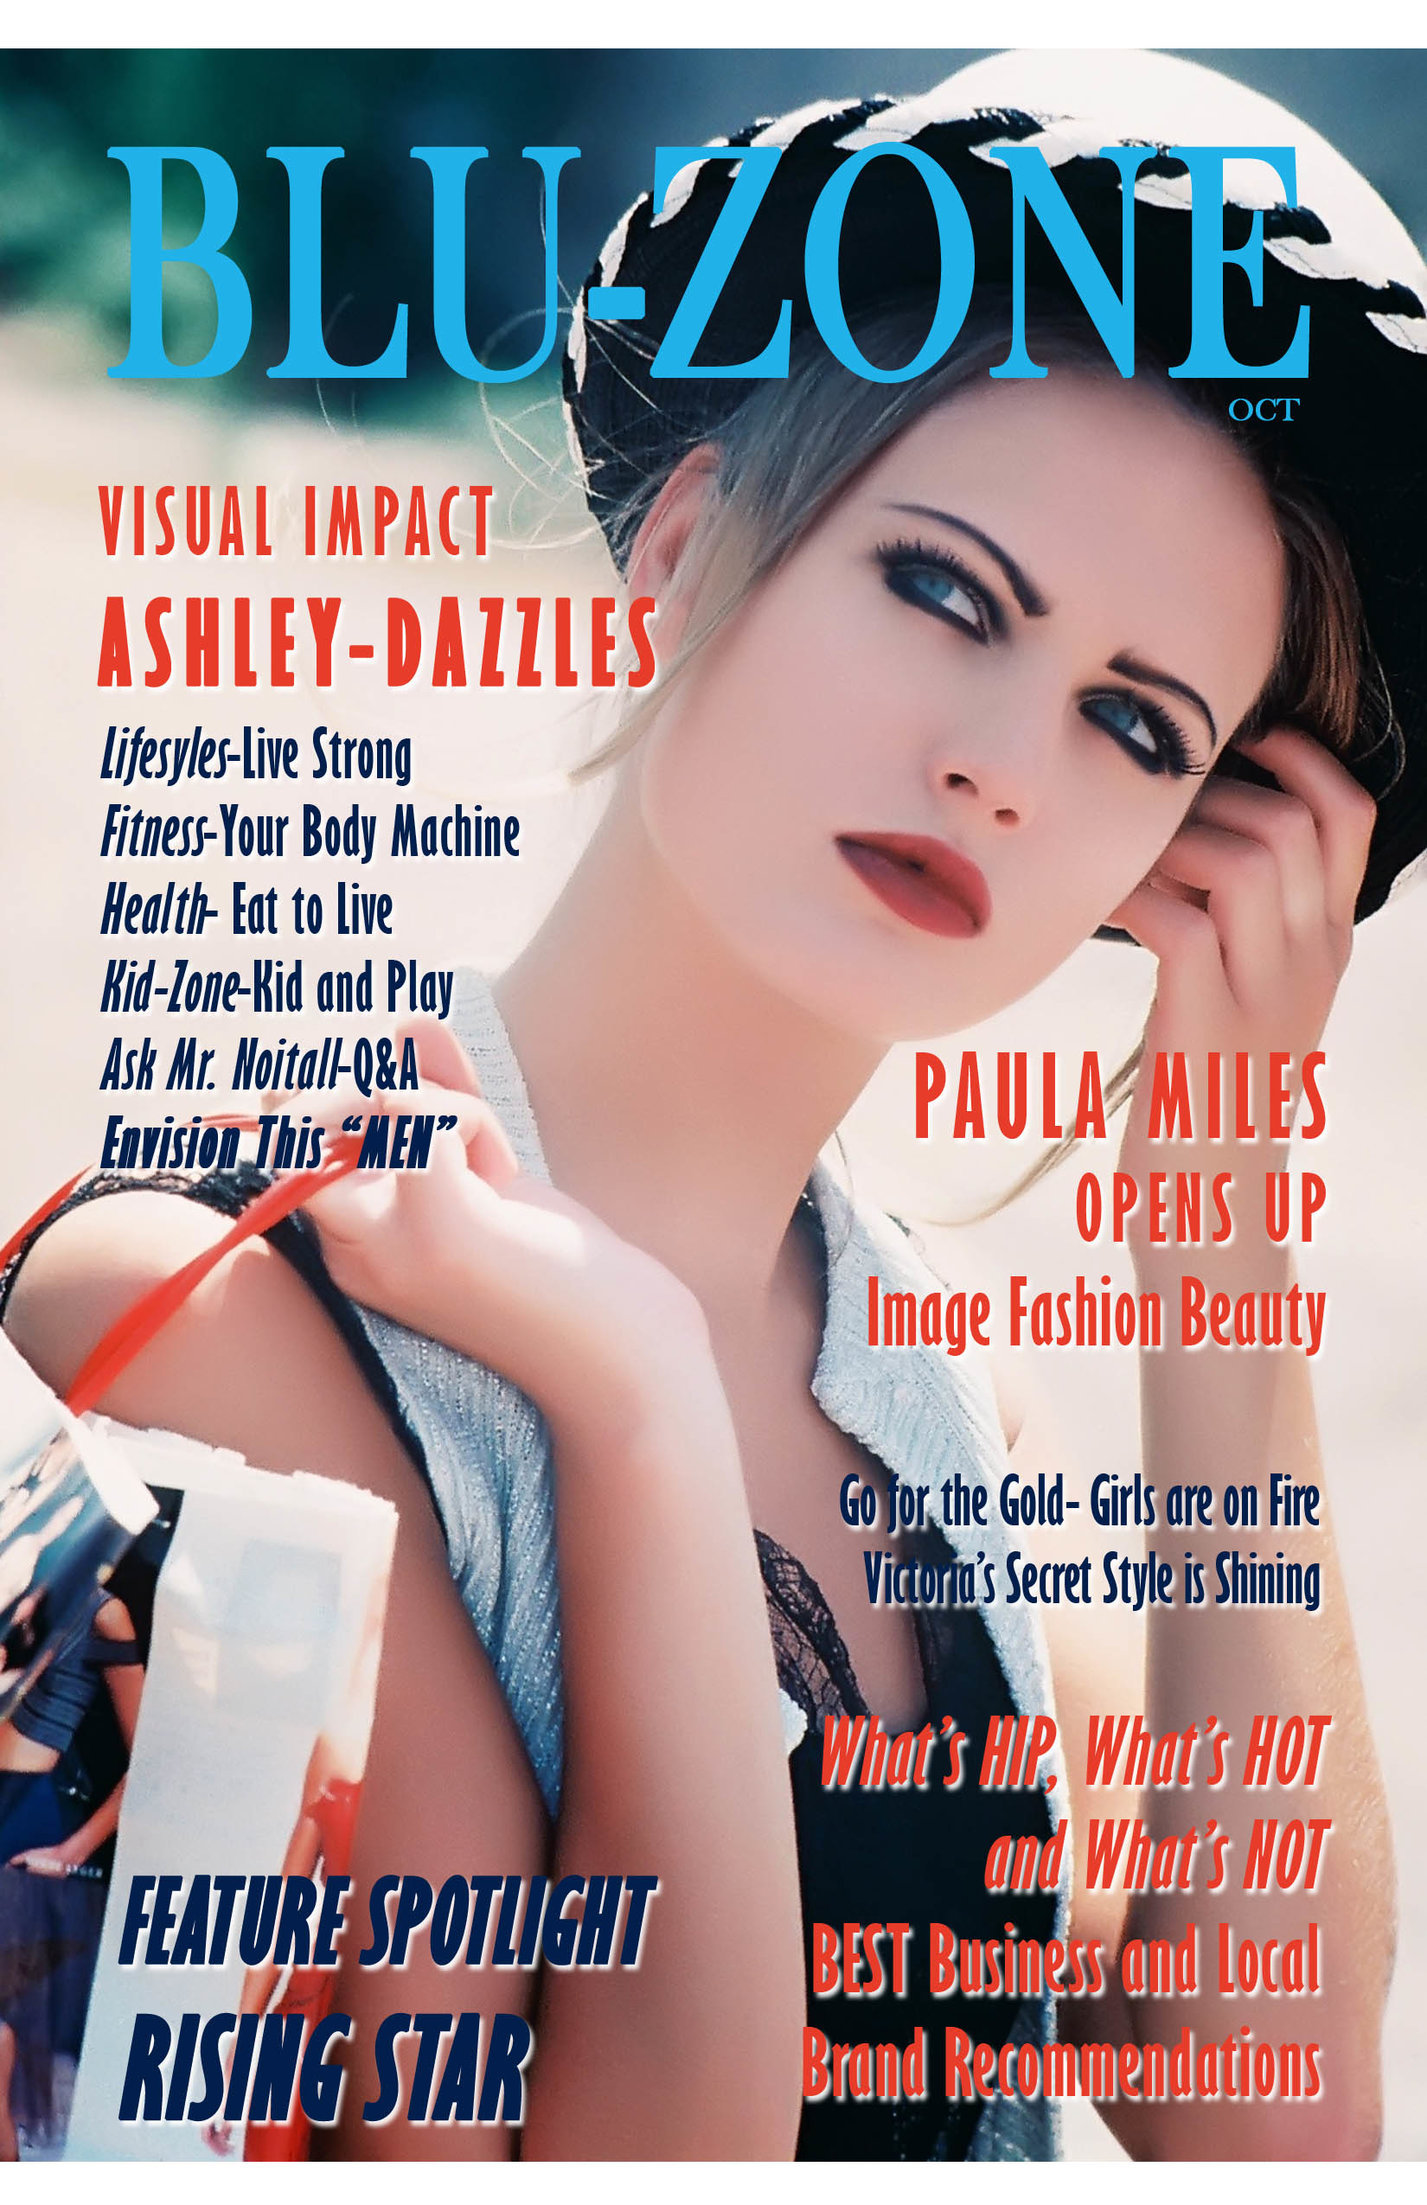 International supermodel ASHLEY appears on the cover of BLU-ZONE mockup.